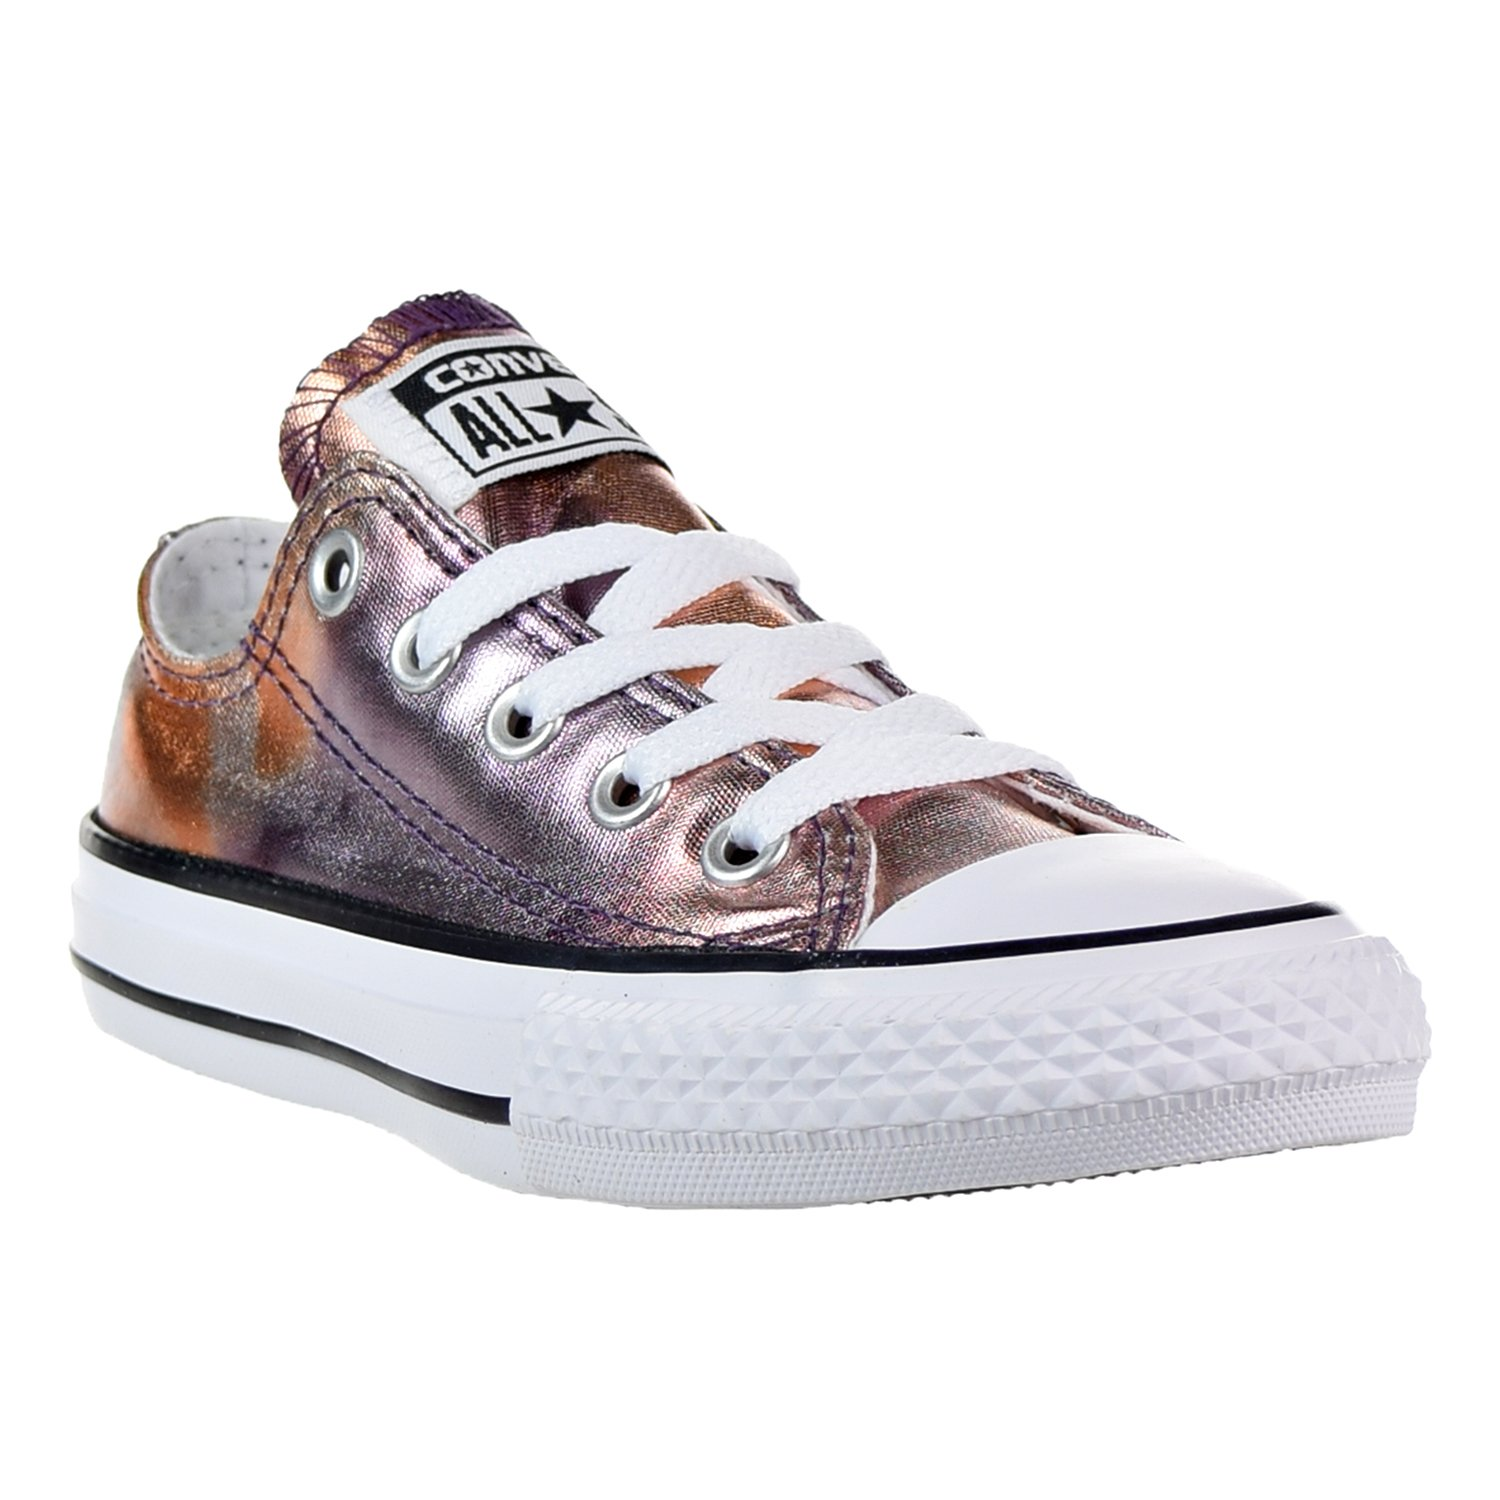 d77e8359505784 Galleon - CONVERSE KIDS ALL STAR LOW YOUTH DUSK PINK WHITE BLACK SIZE 11.5